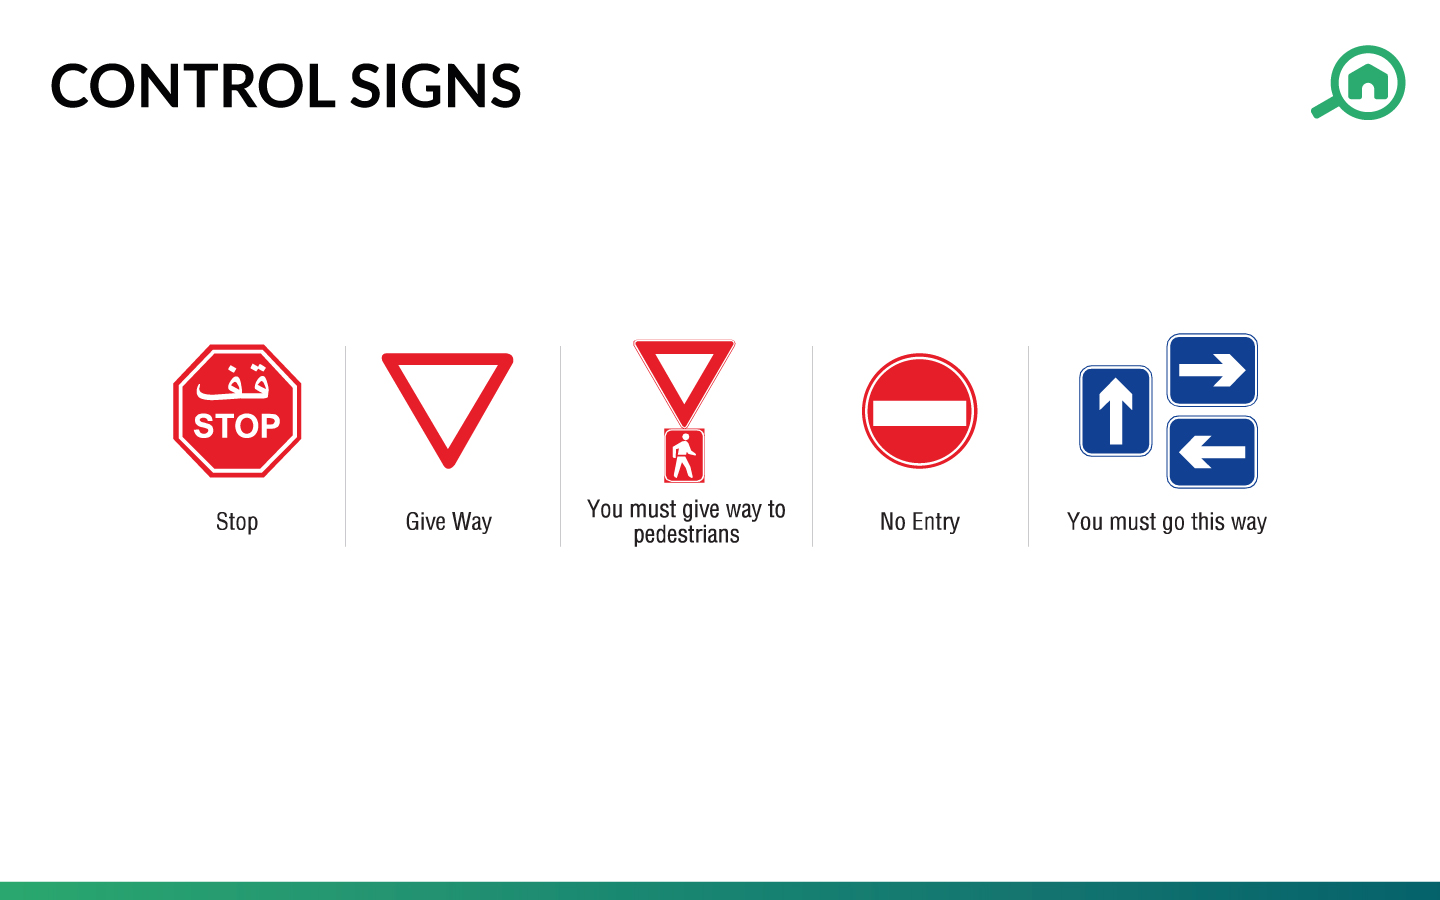 Control traffic signs in the UAE